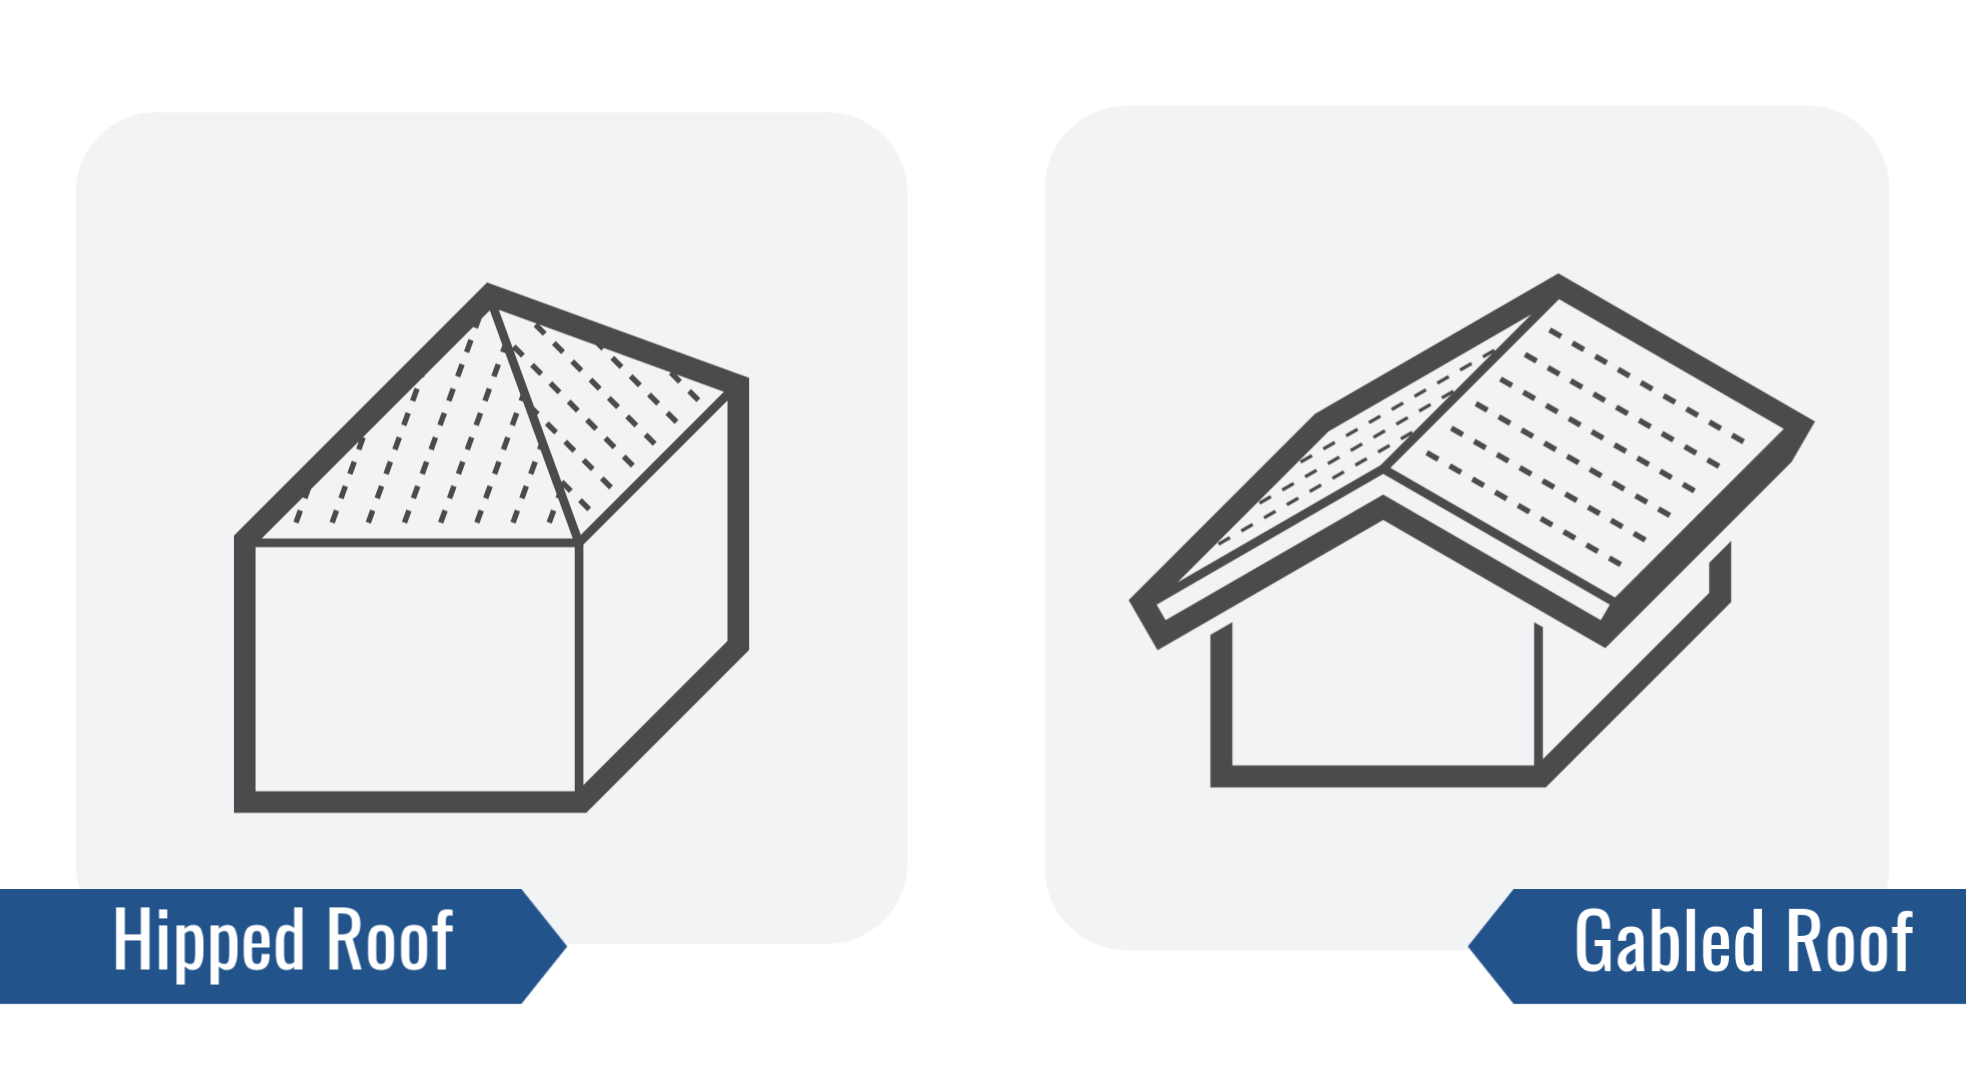 hipped vs. gabled roof comparison